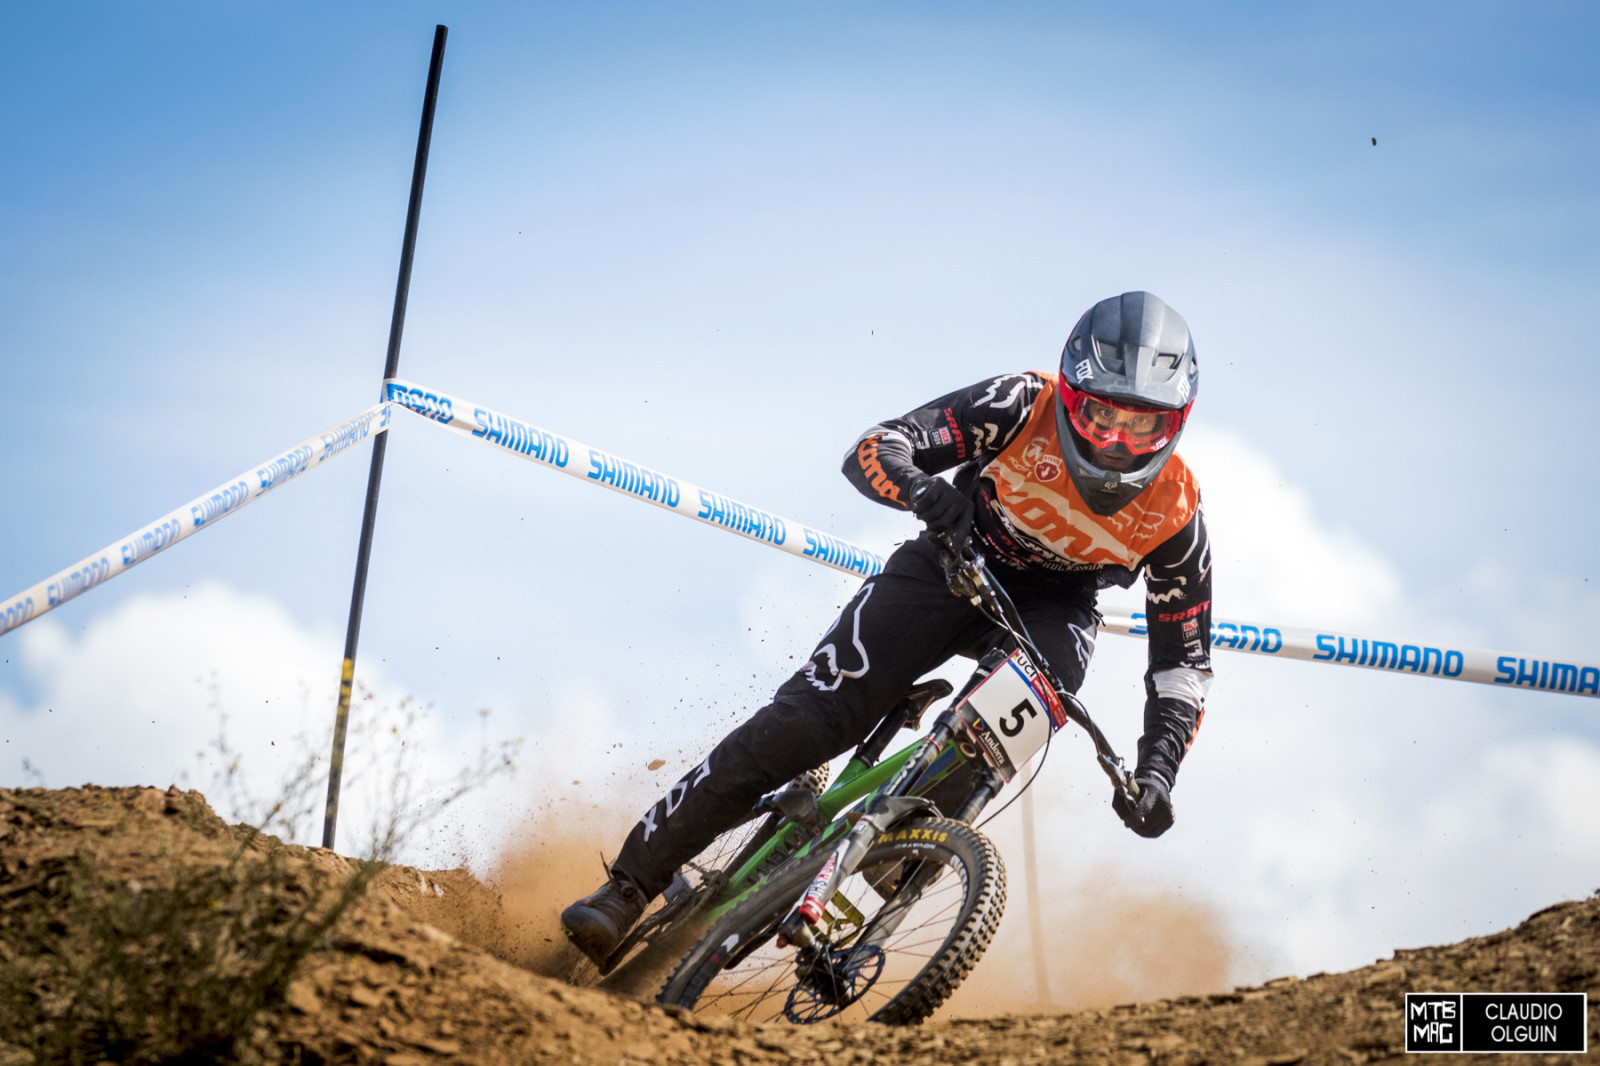 If Connor Fearon can step it up and have a huge result, this could be ...: www.mtb-mag.com/en/racing-andorra-practice-gallery